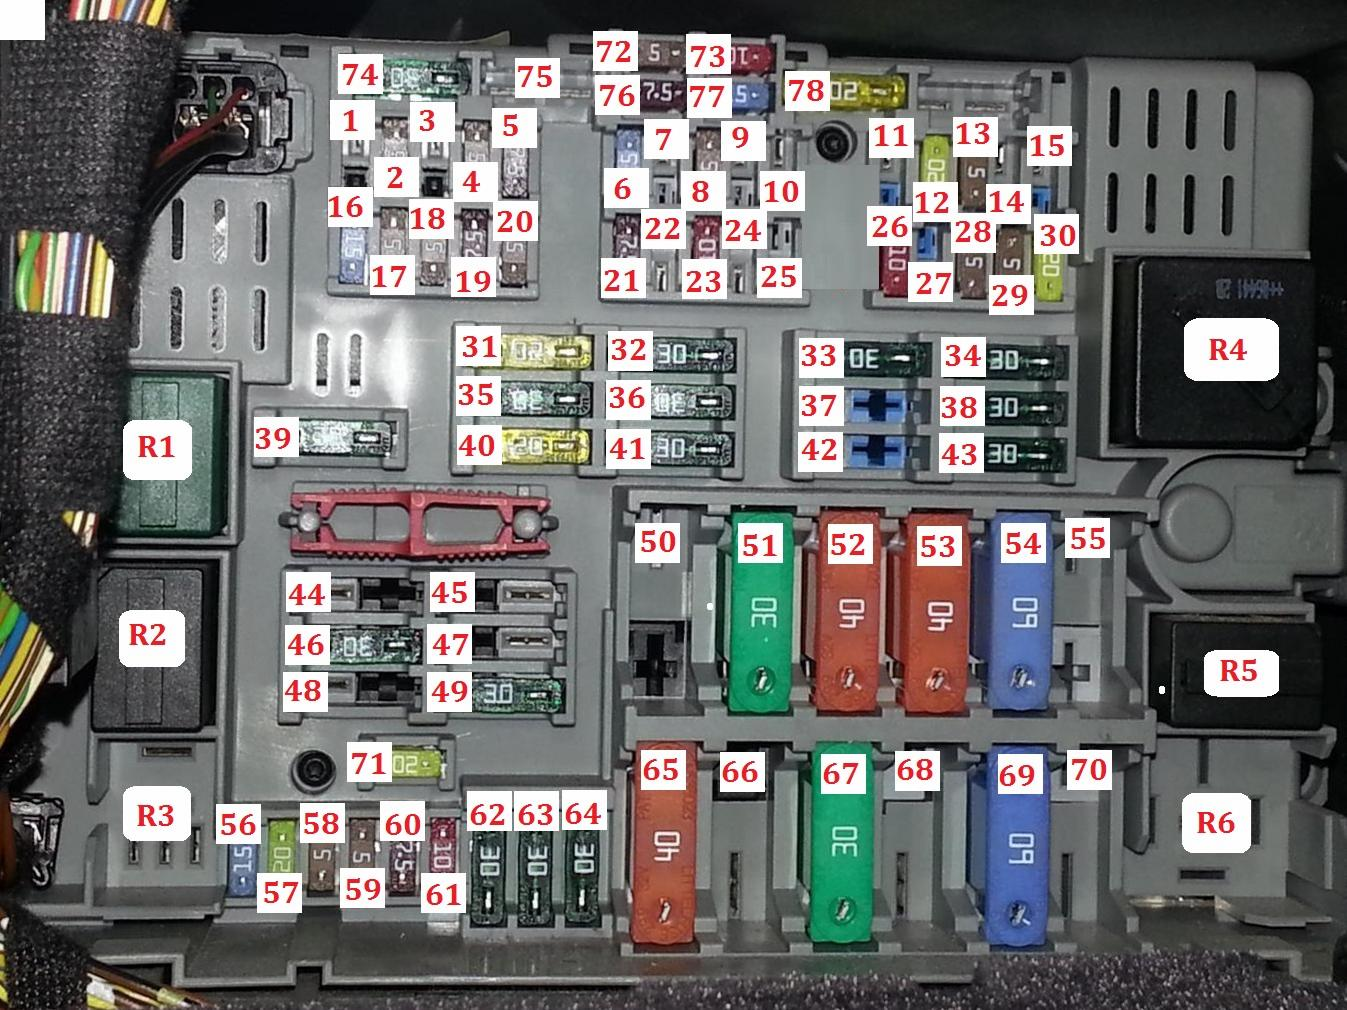 Bmw E30 Wiring Diagram Another Blog About Early Porsche 944 Fuse Box Dia And Relay E90 318i